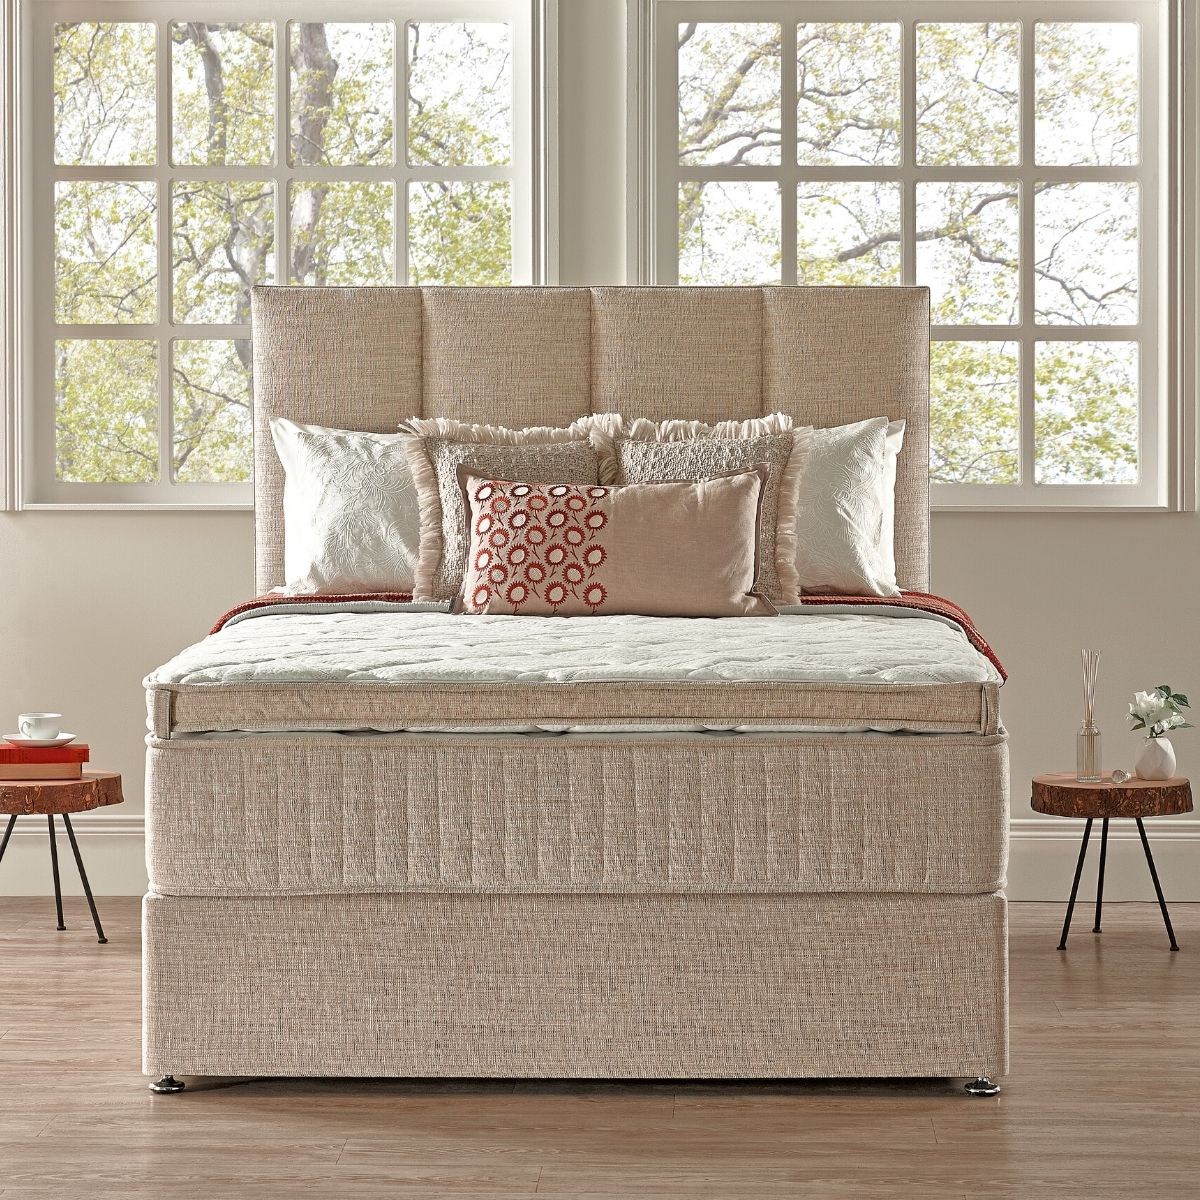 Sumptuous Support Mattress by Respa available at Corcoran's Furniture & Carpets